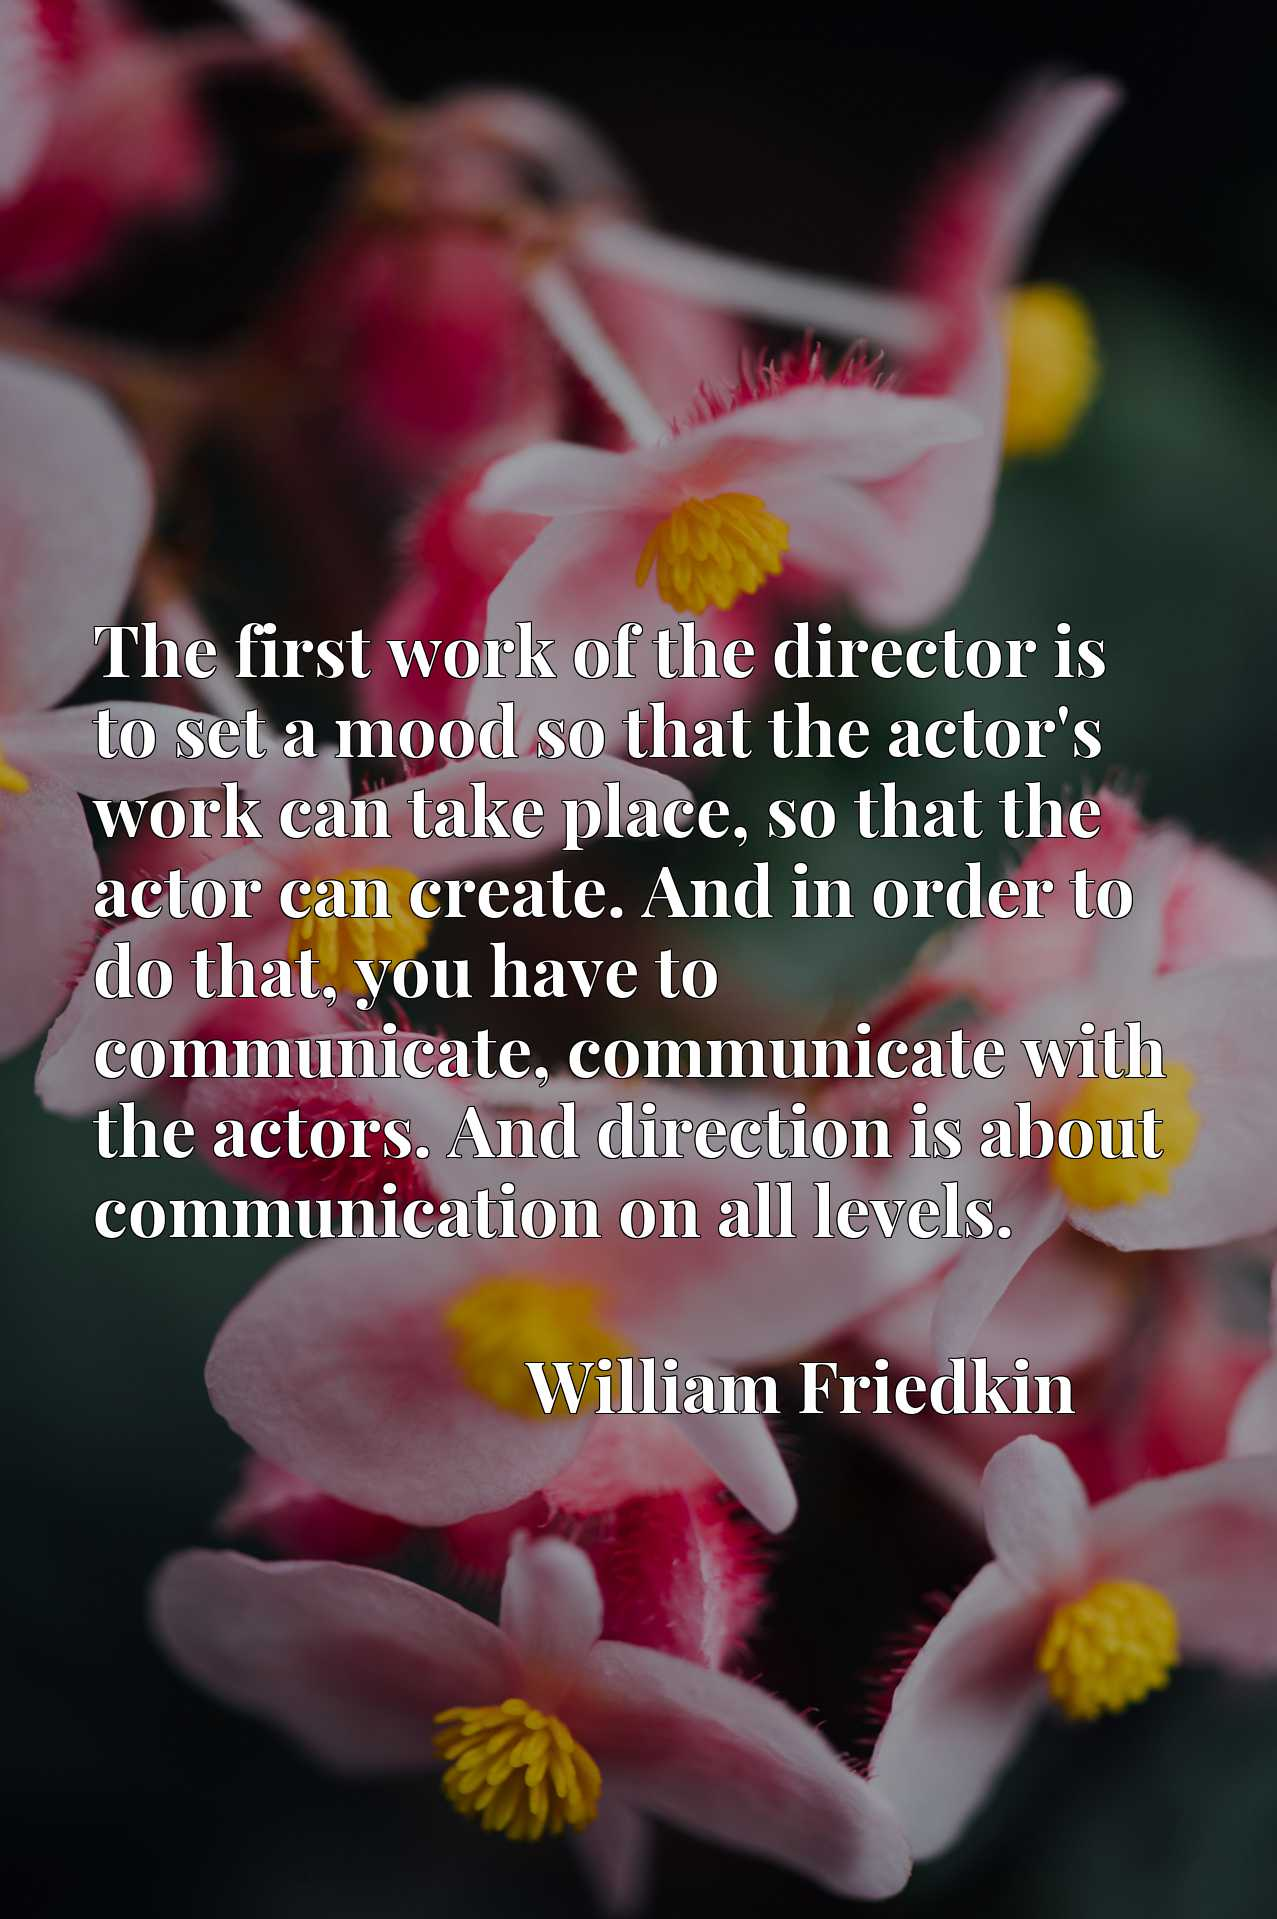 The first work of the director is to set a mood so that the actor's work can take place, so that the actor can create. And in order to do that, you have to communicate, communicate with the actors. And direction is about communication on all levels.